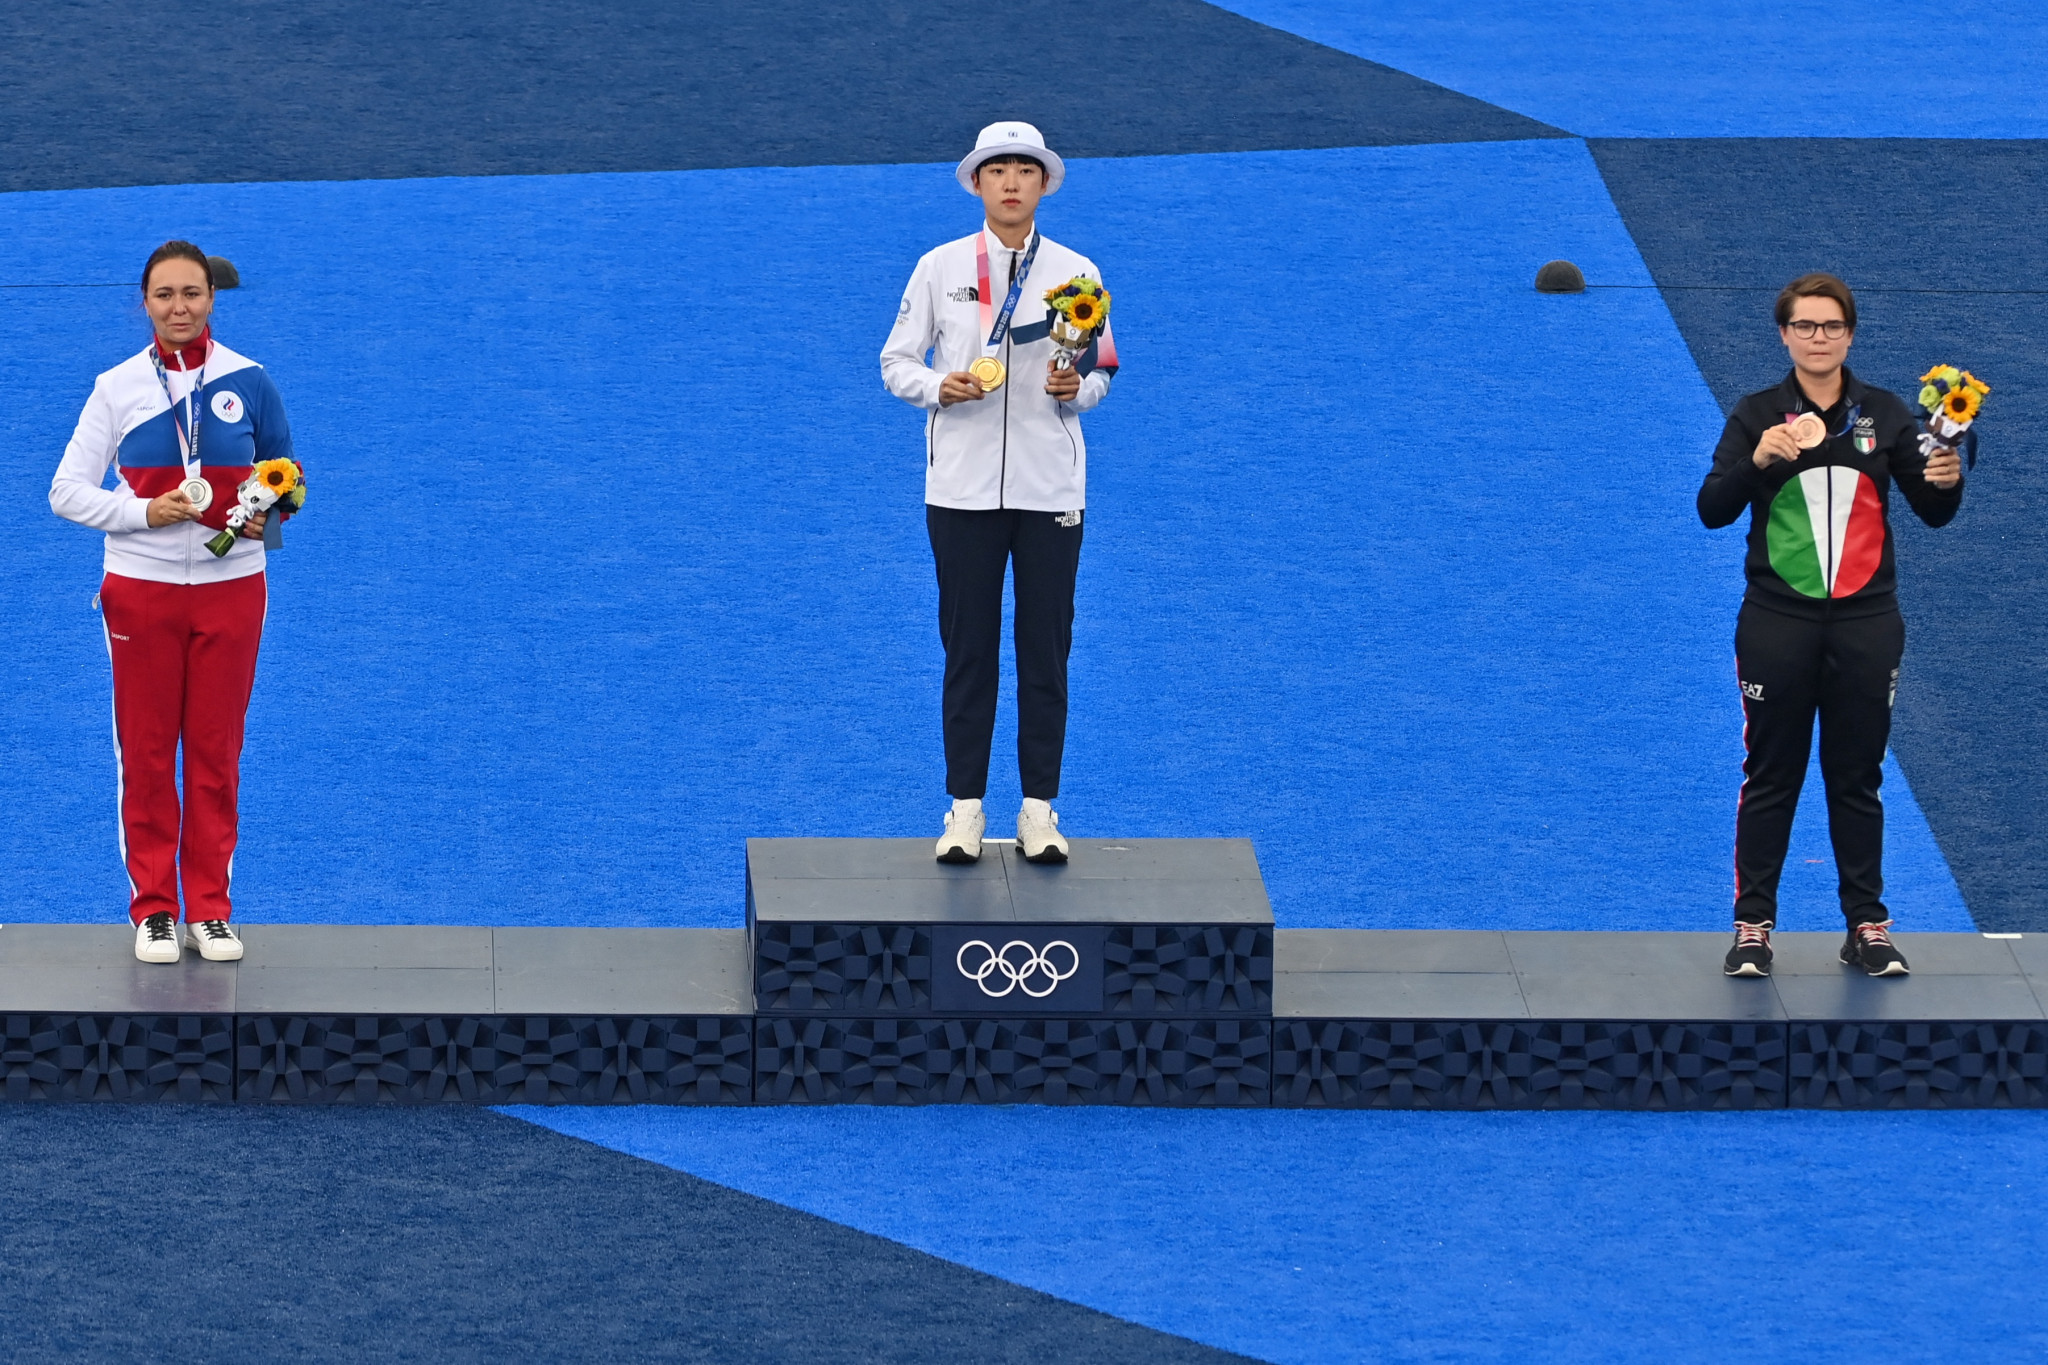 Elena Osipova, left, and Lucilla Boari, right, won silver and bronze respectively as An San became the first athlete to win three gold medals at the Tokyo 2020 Olympics ©Getty Images